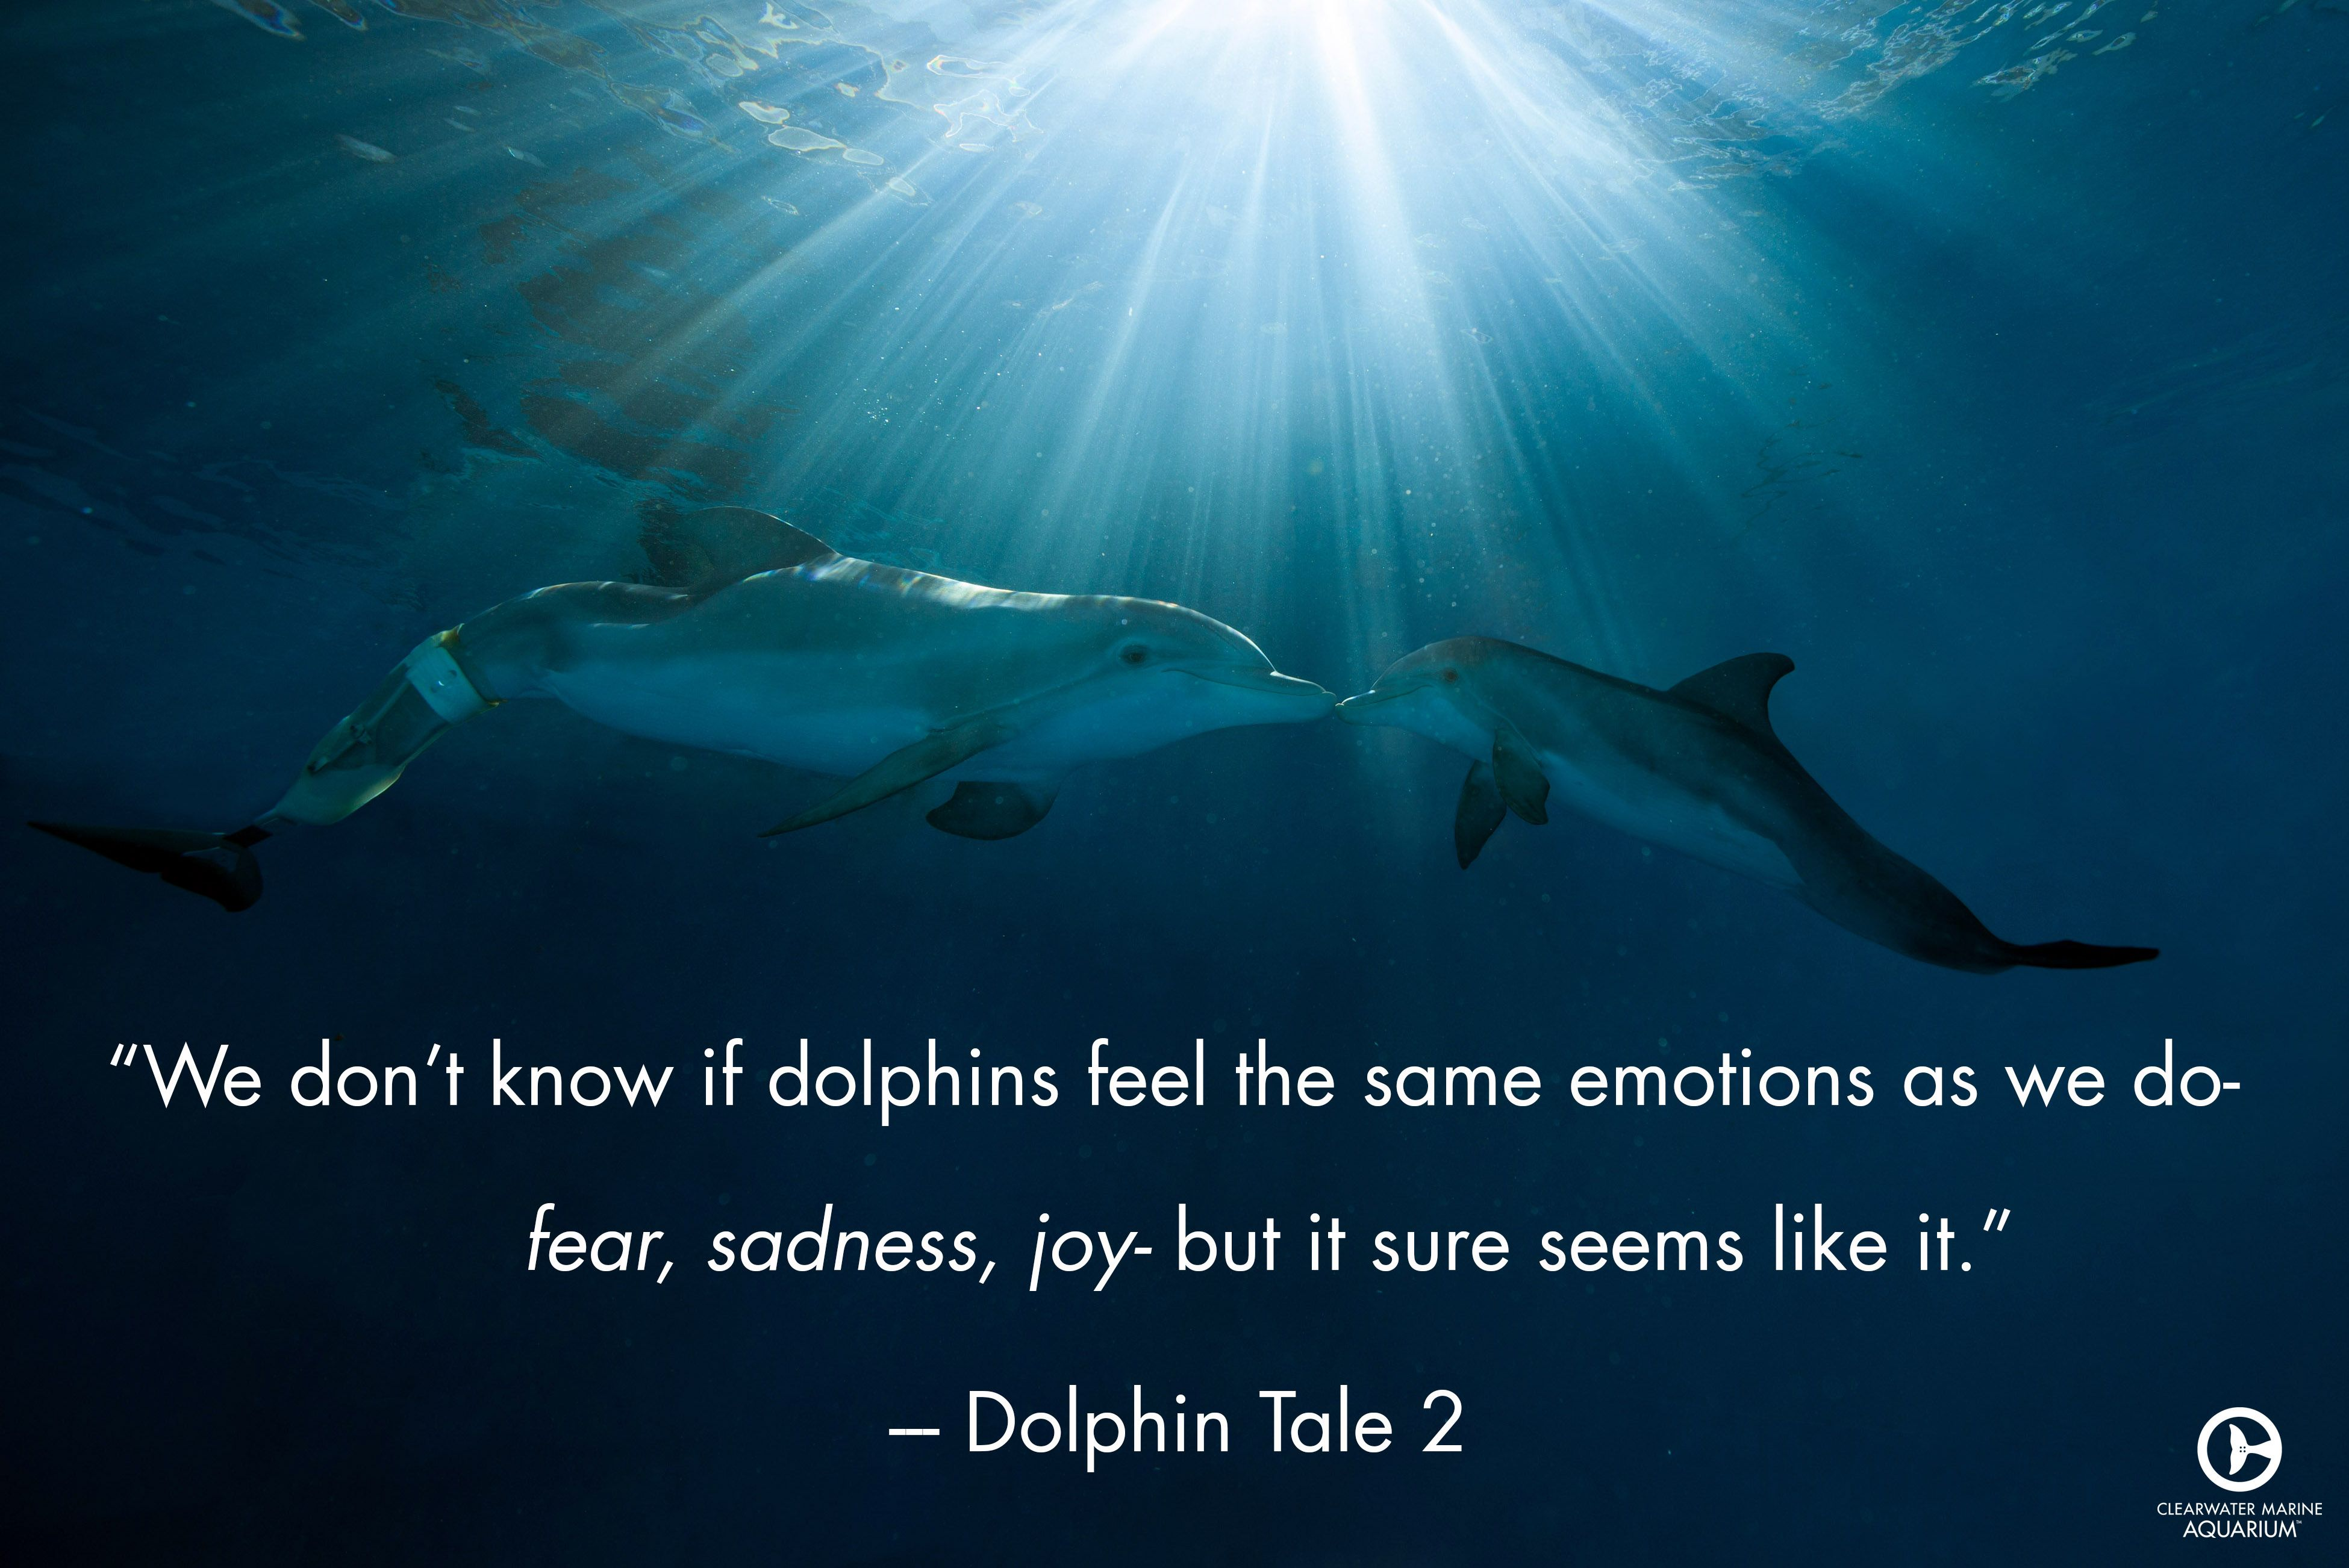 Who remembers this quote from Dolphin Tale 2? What was your favorite